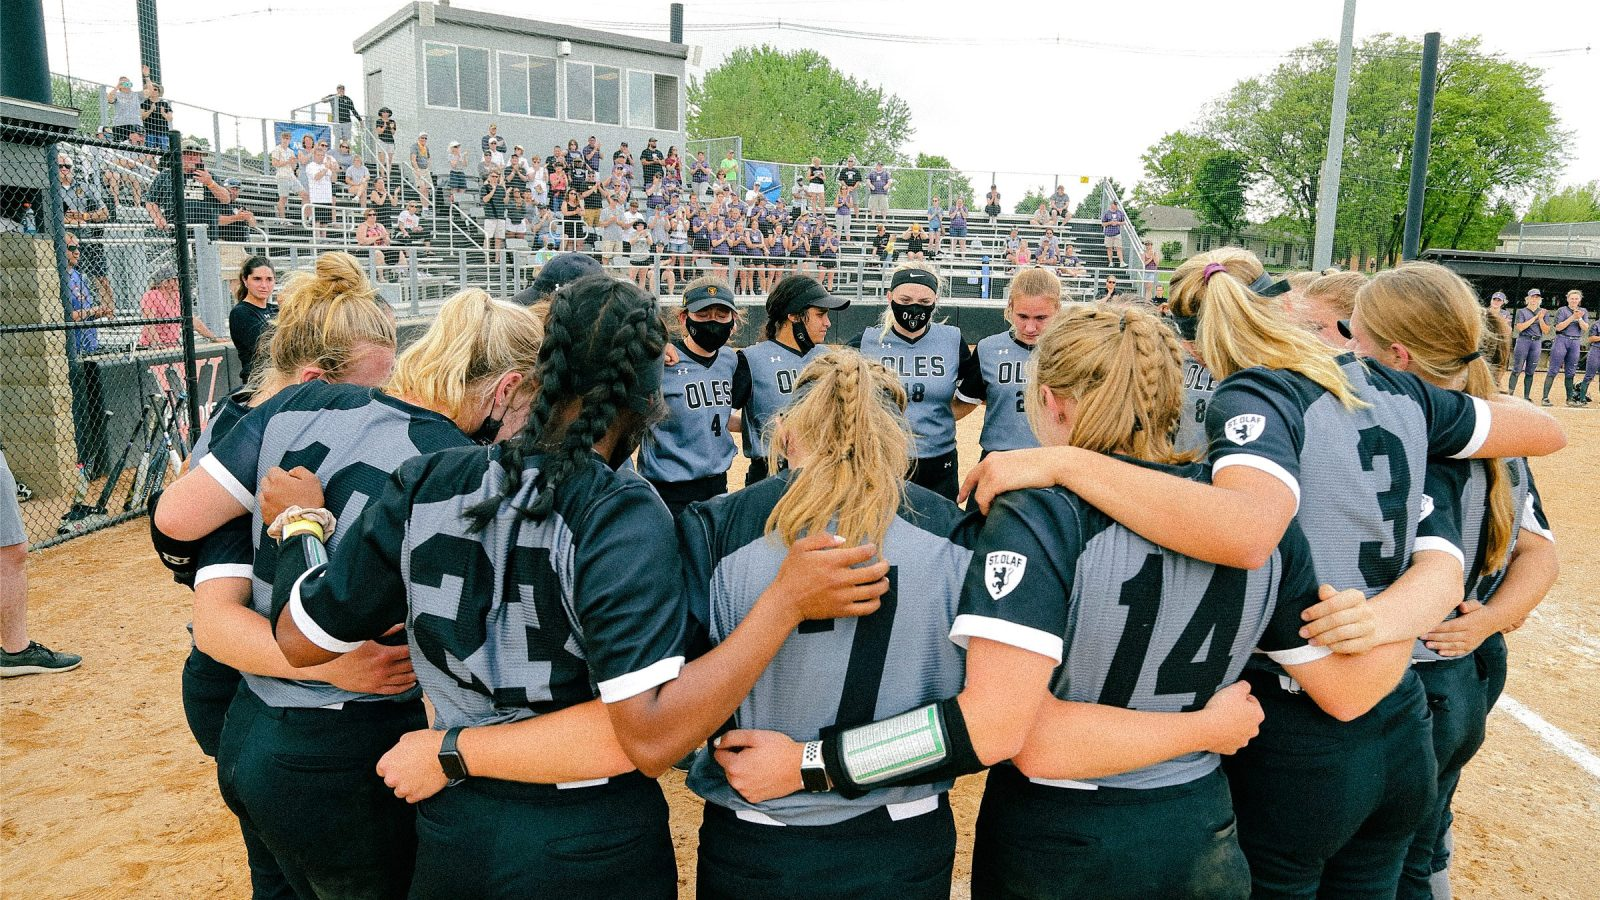 The St. Olaf softball team at the 2021 regional finals in Waverly, Iowa.